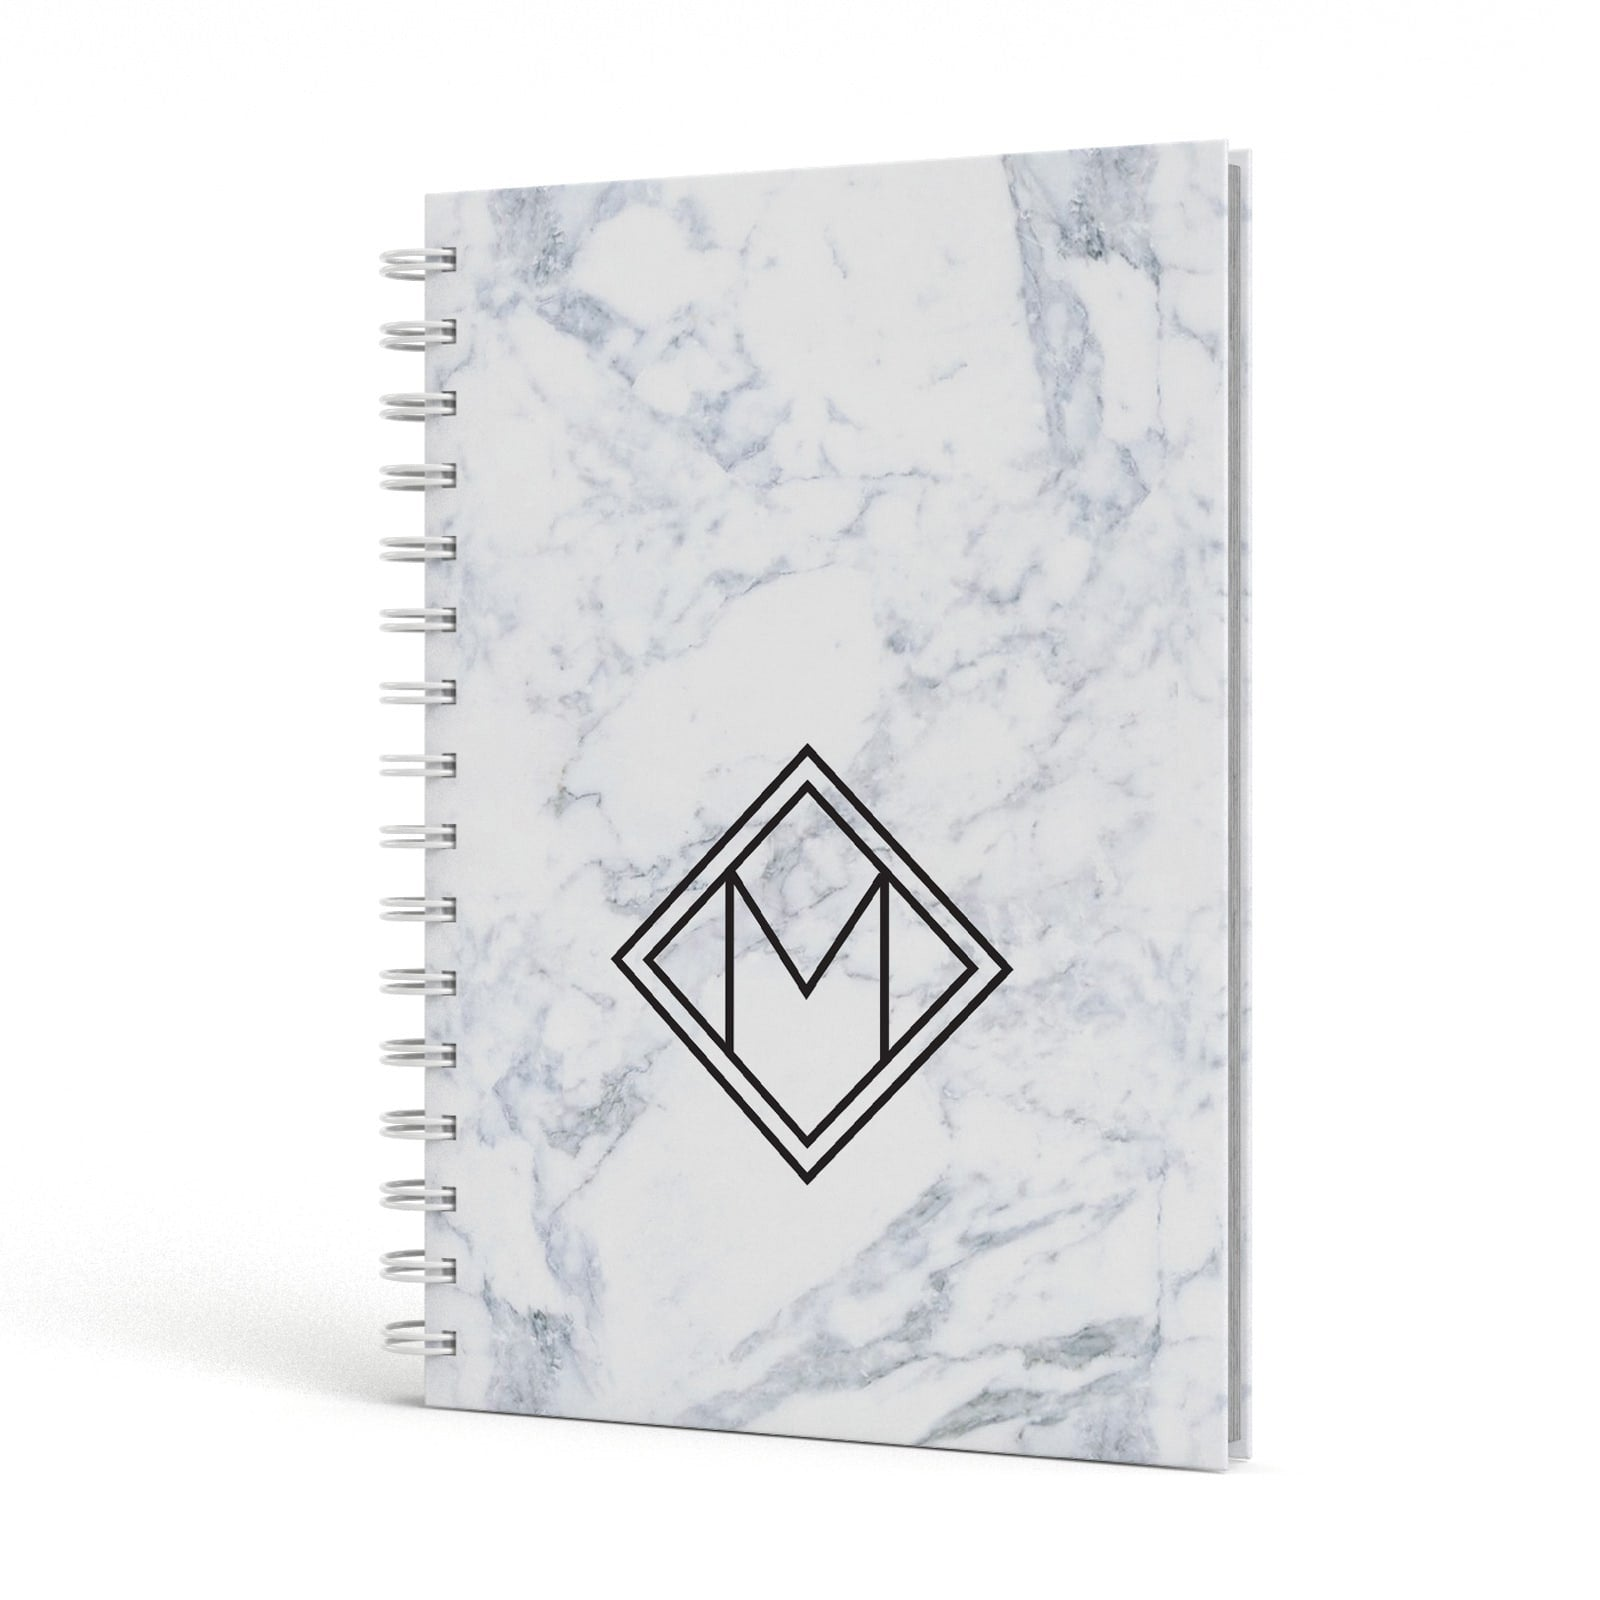 Personalised Marble Customised Initials A5 Hardcover Notebook Side View